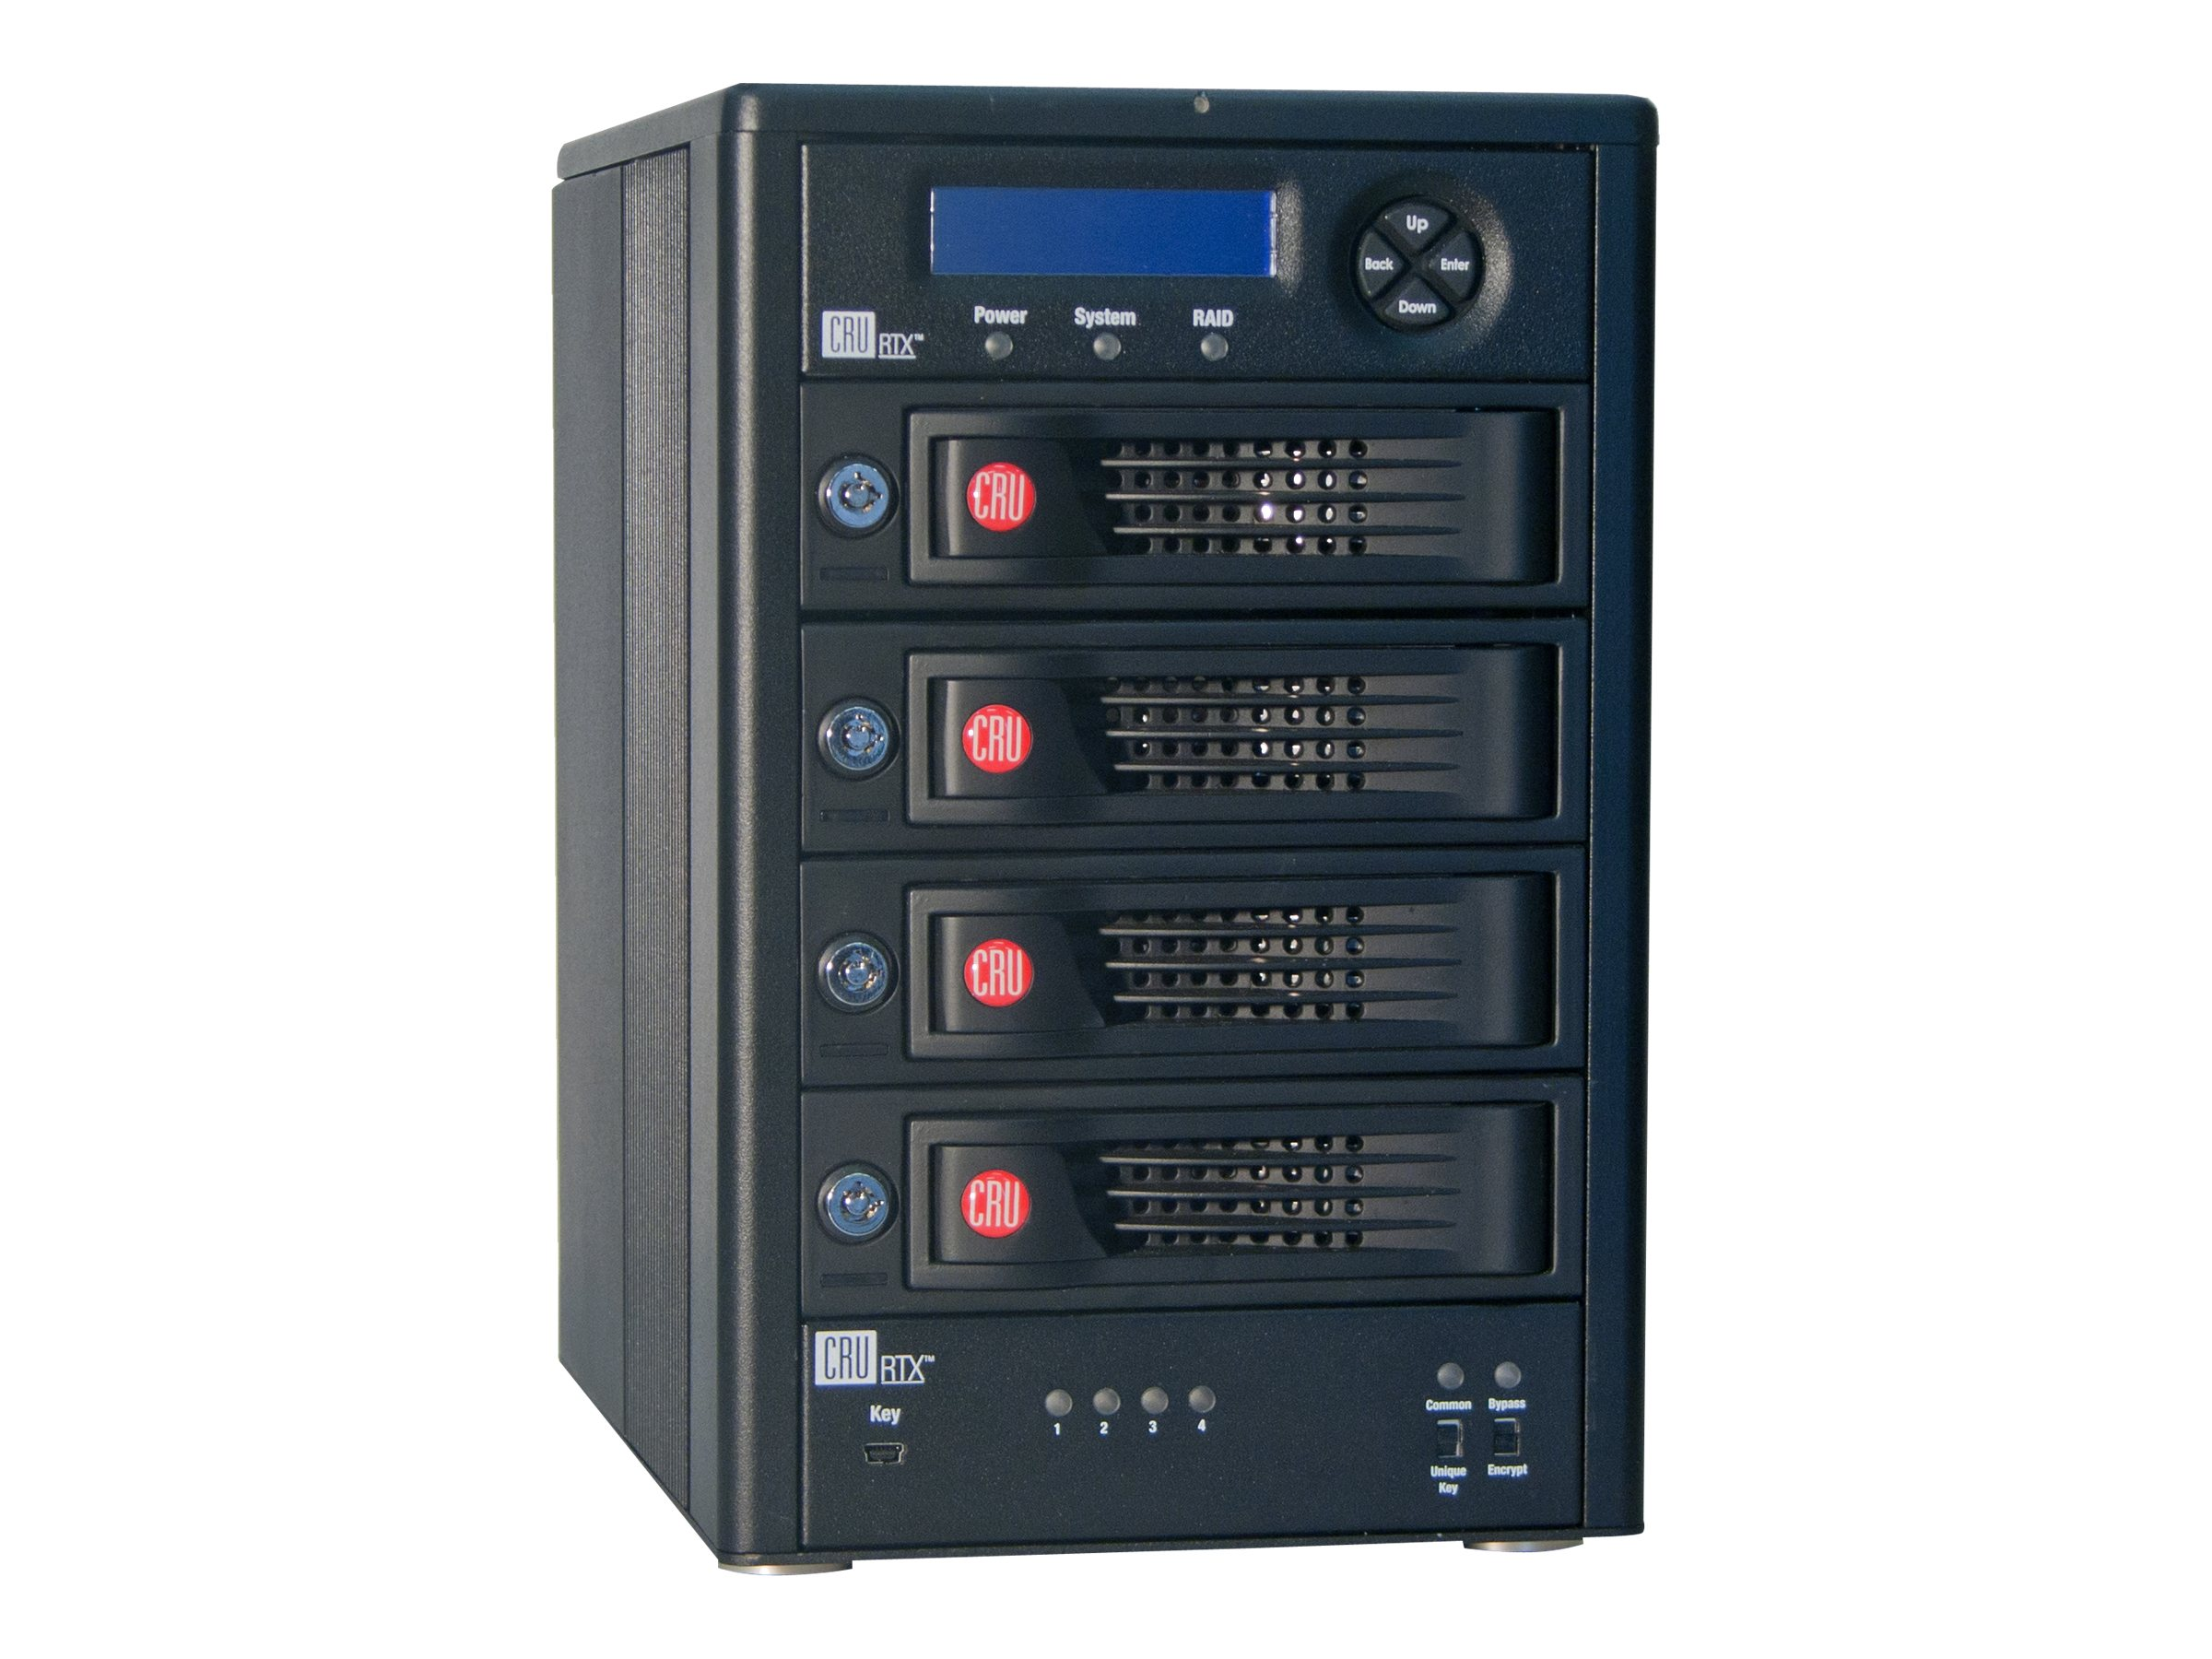 CRU 12TB RTXS 410-3QR R5 HF Storage w  Keys, 35450-3137-3400, 17730341, Hard Drives - External